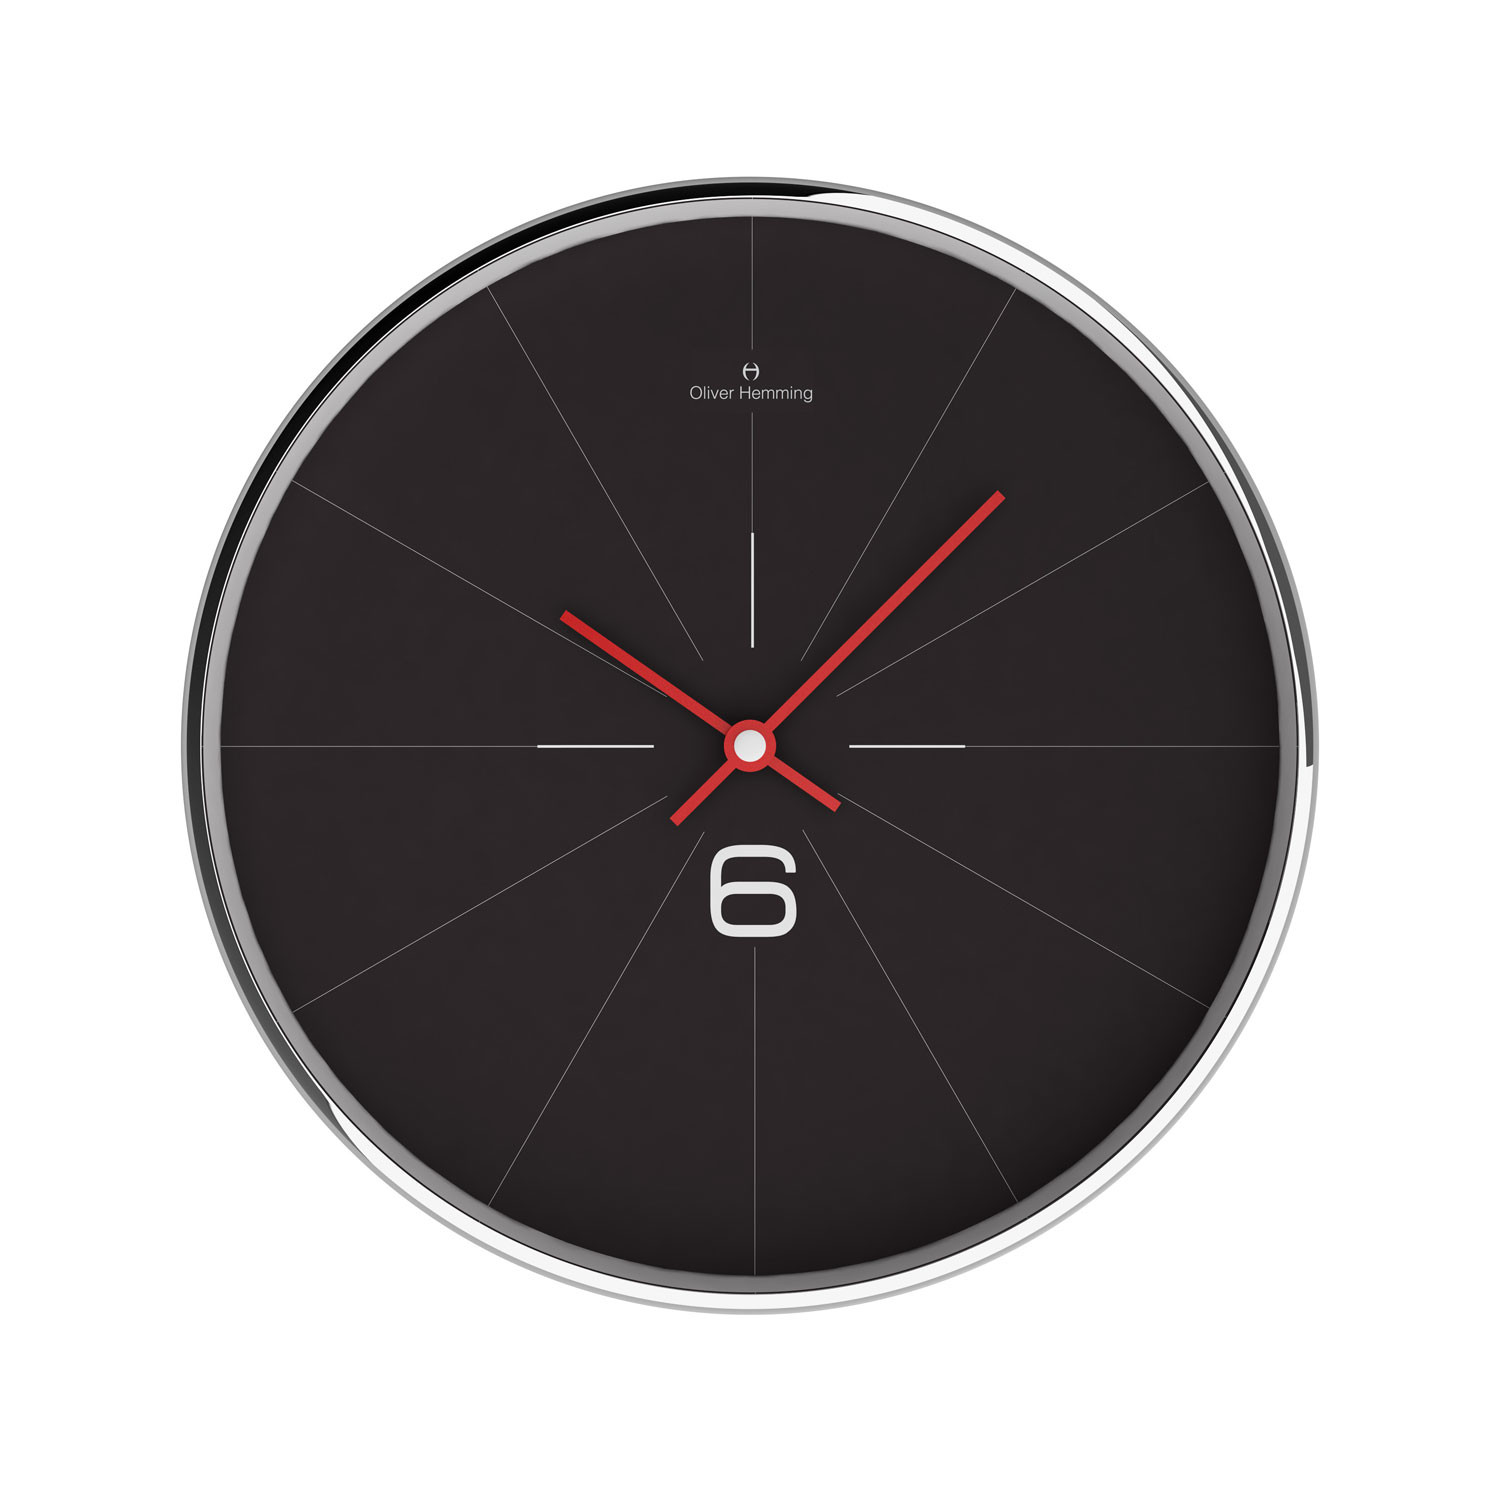 Chrome wall clock w303s26b oliver hemming wall clocks for Touch of modern clock